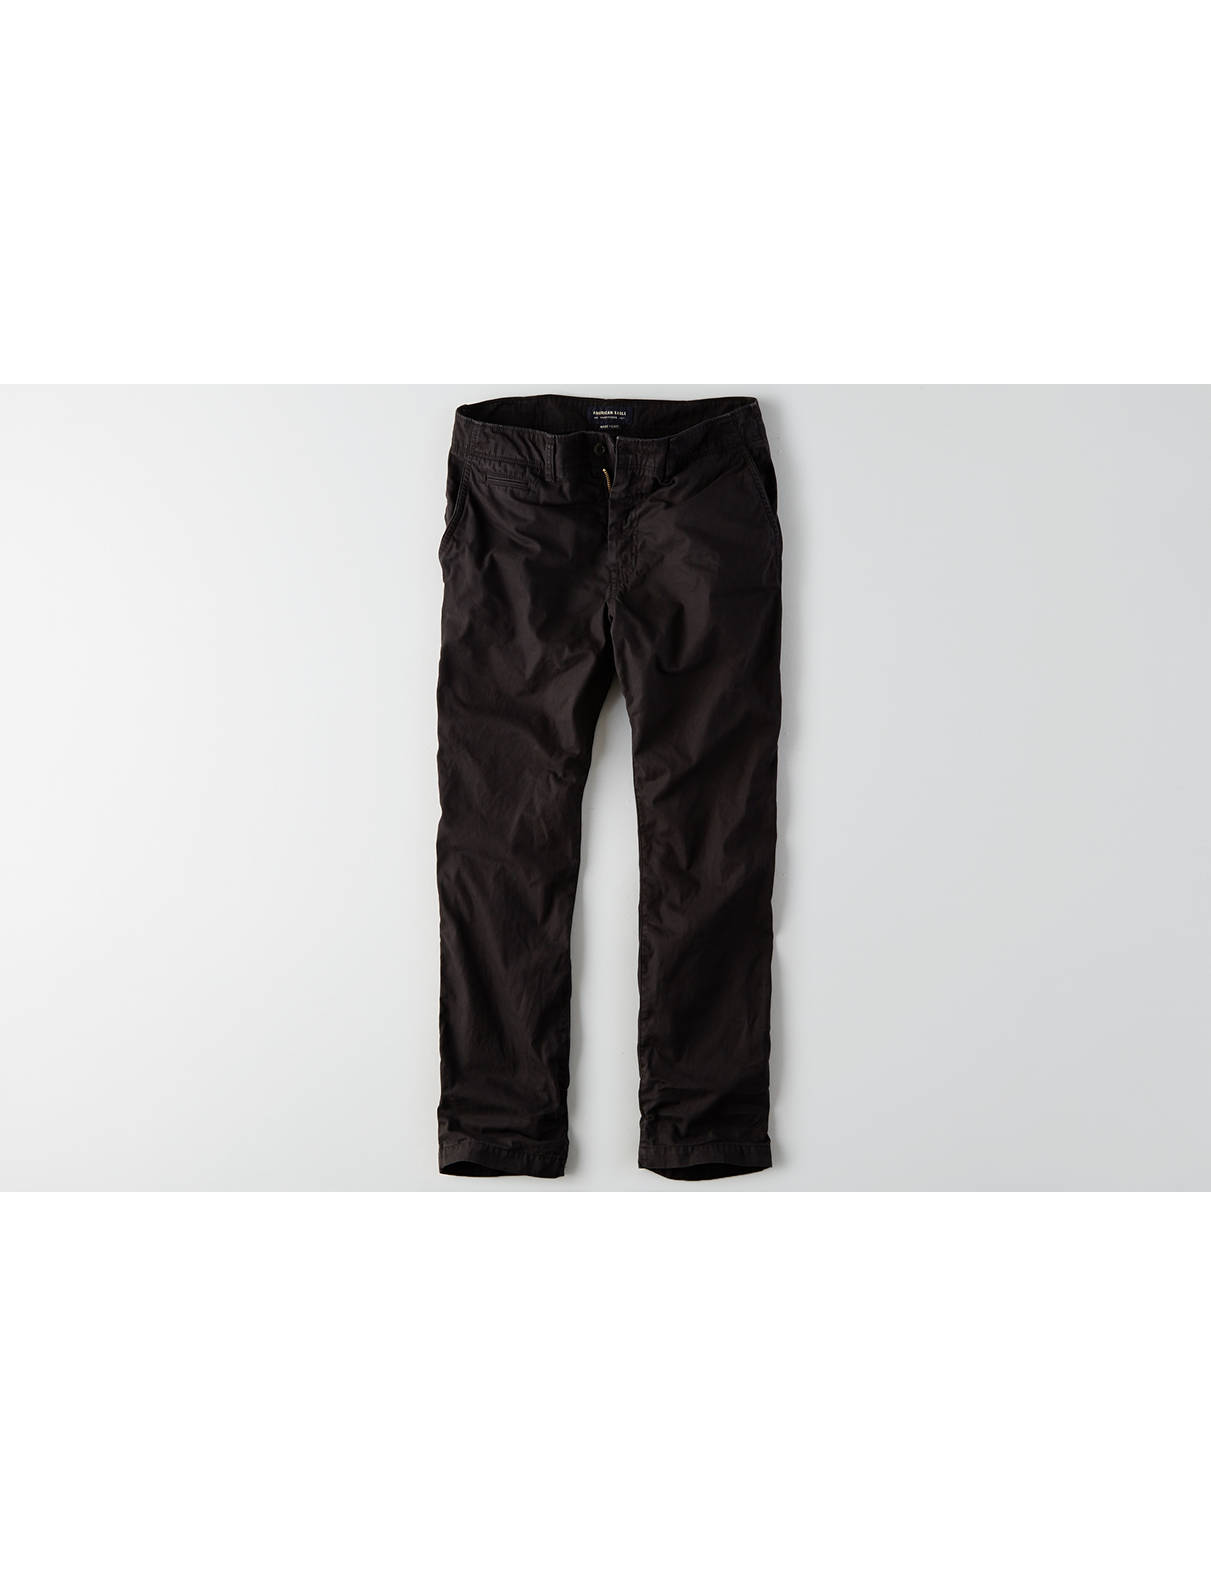 Display product reviews for Original Straight Chino